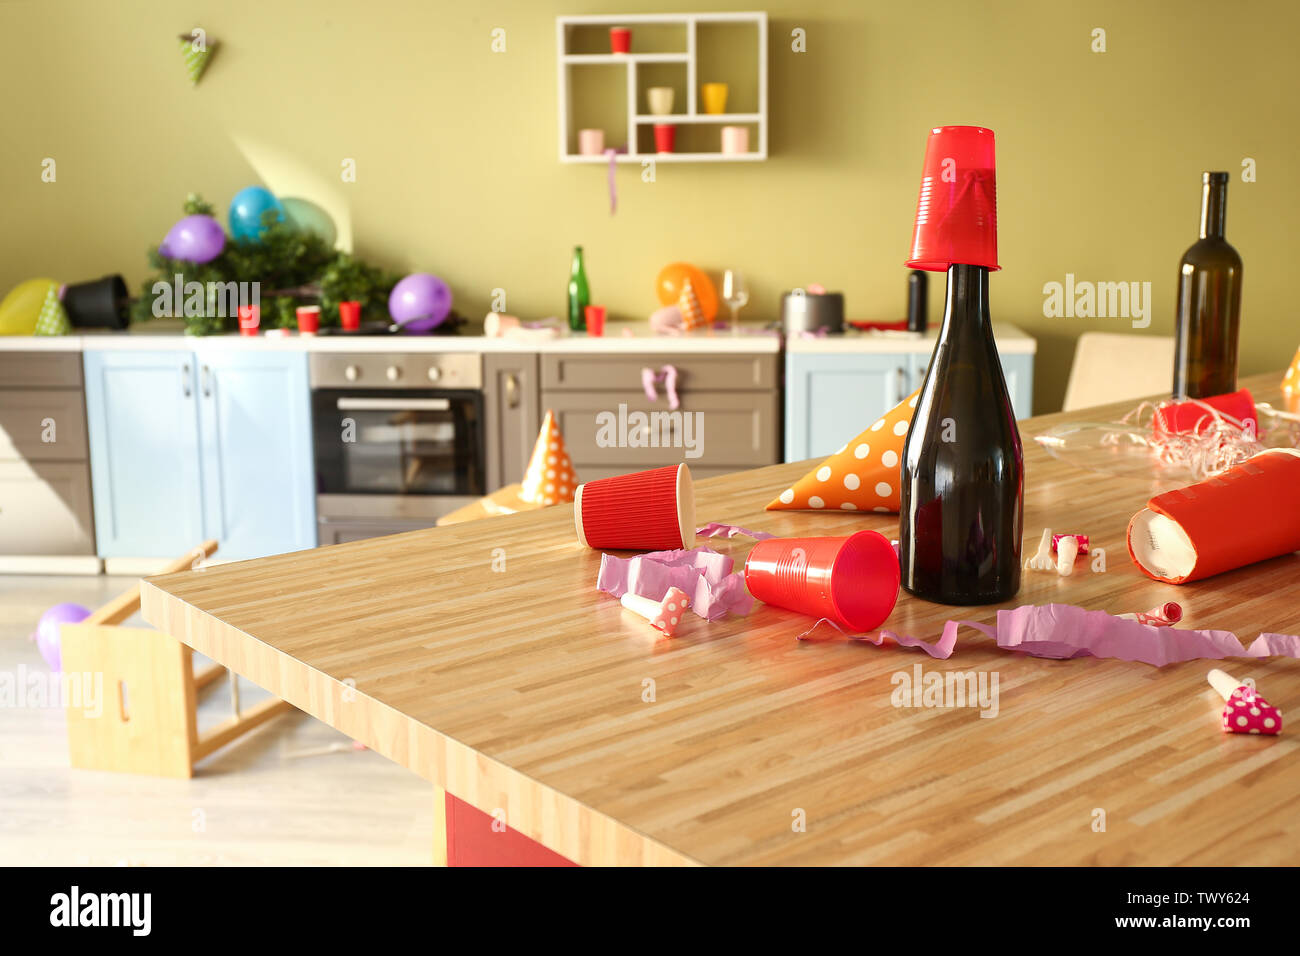 Interior of kitchen after party - Stock Image